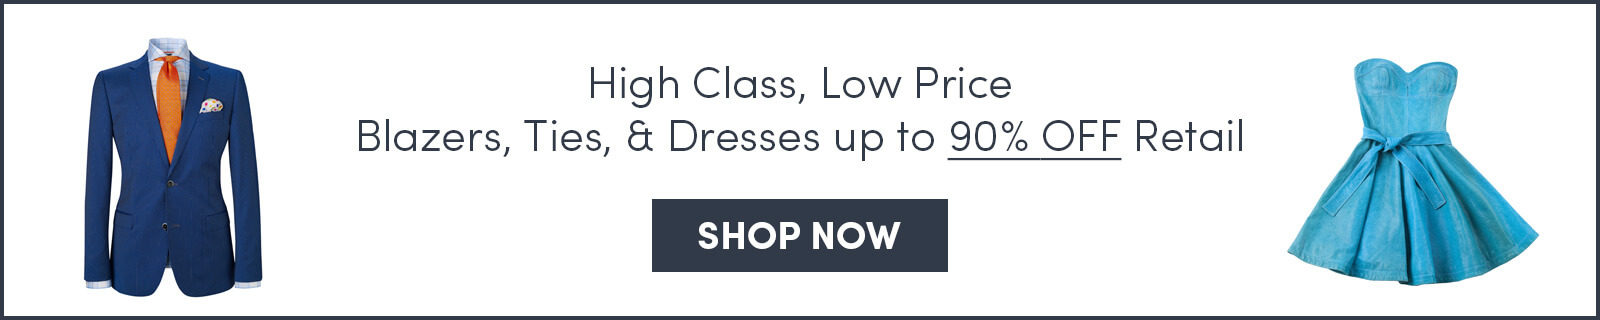 High Class, Low Price Blazers, Ties, & Dresses Up To 90% Off Retail